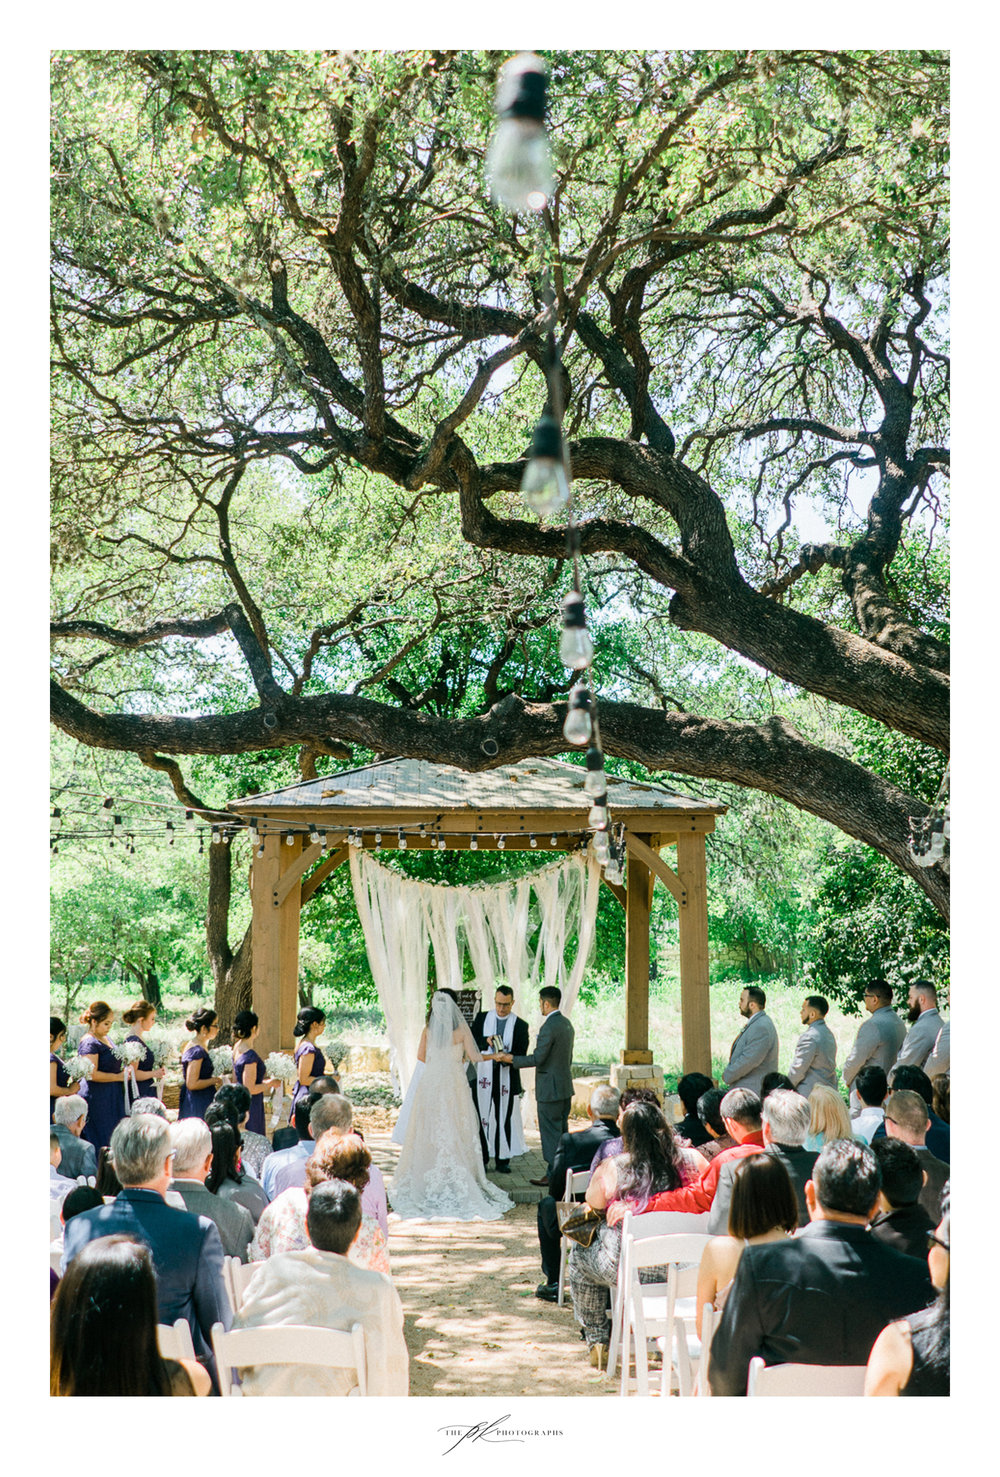 Wedding ceremony at Magnolia Halle in San Antonio, Texas - Photographed by The PK Photographs